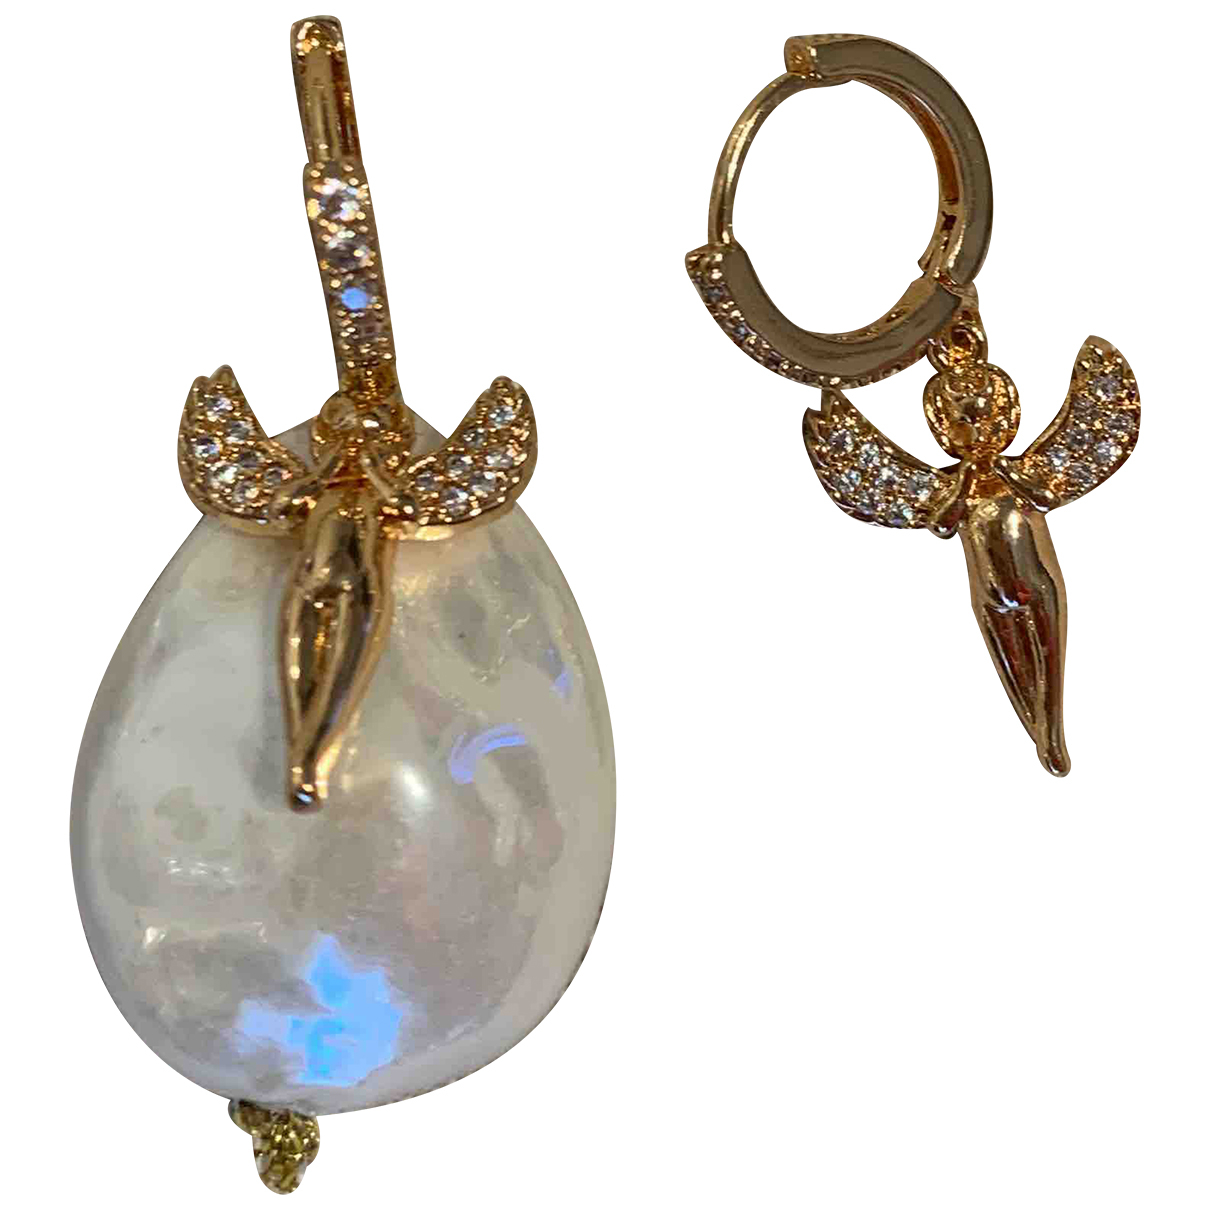 Non Signe / Unsigned Motifs Religieux OhrRing in  Gold Perle